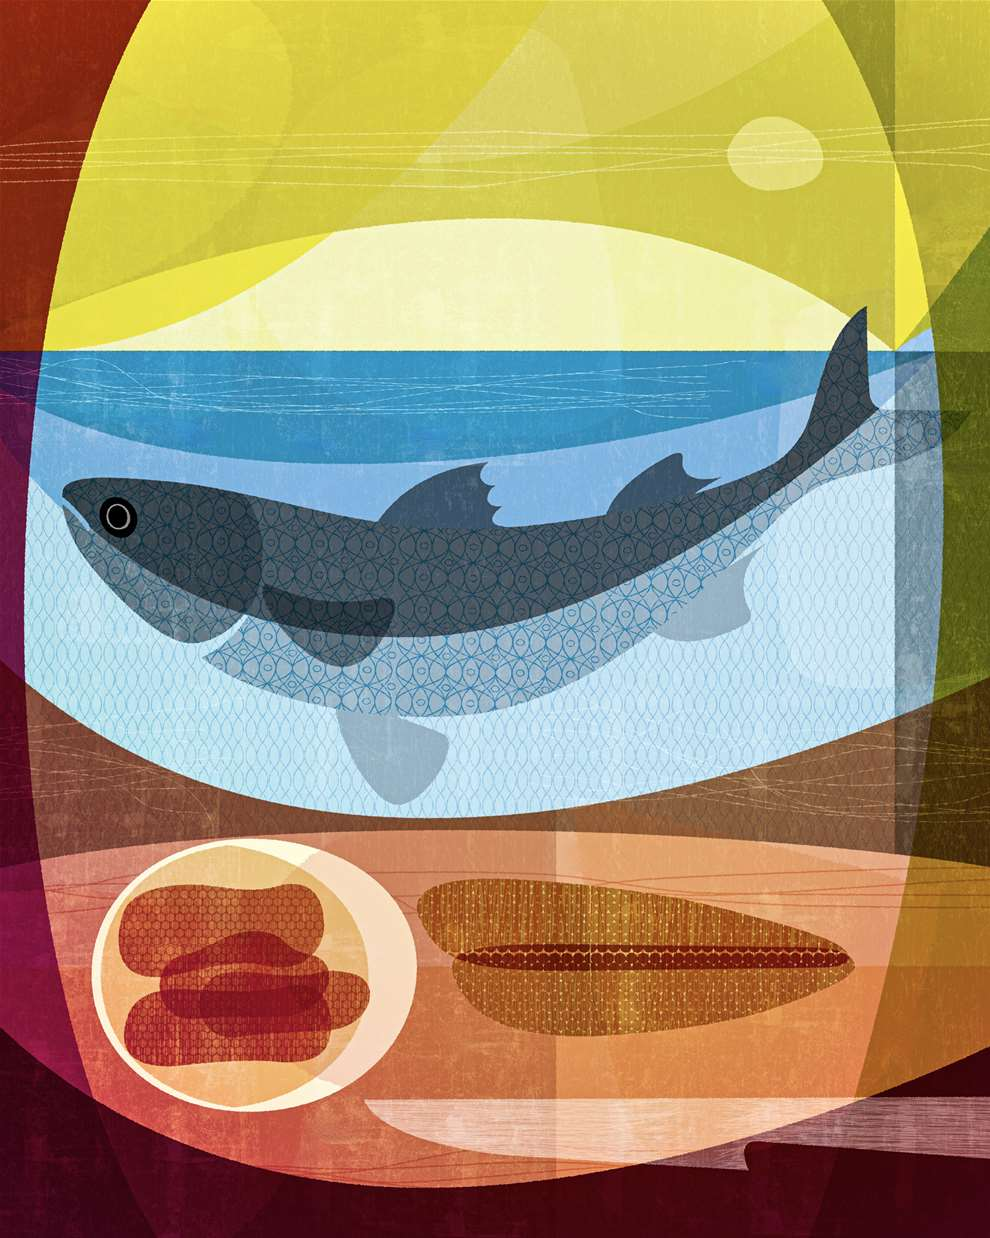 Paul Wearing, Digital Textural Summery Illustration of a meal including a fish.